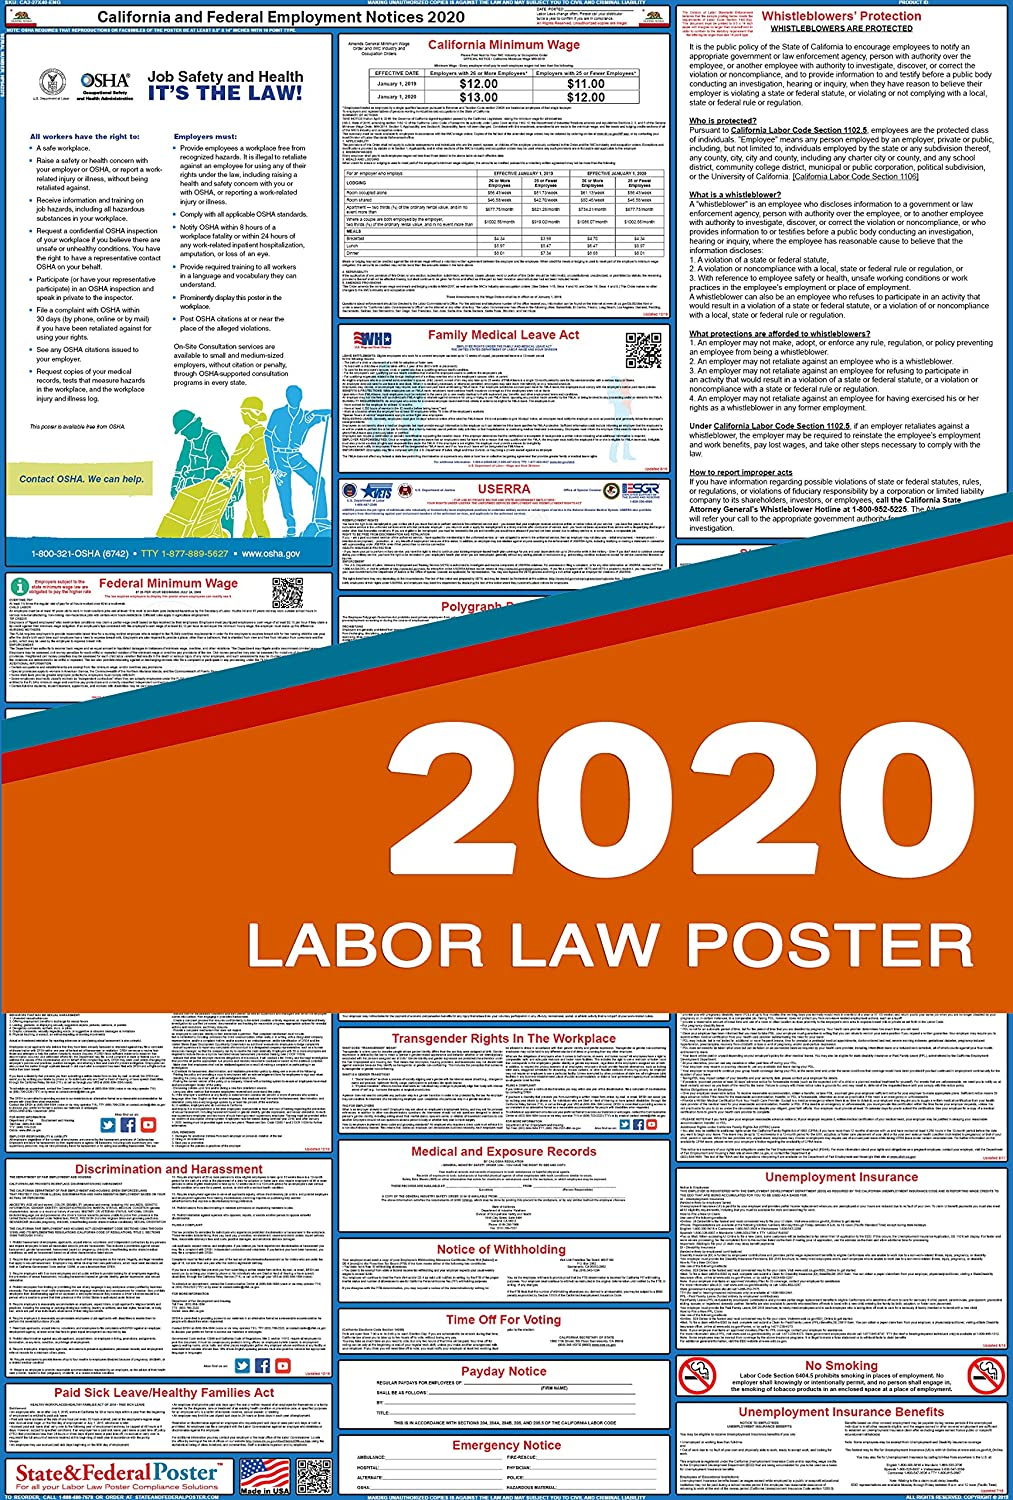 California New Laws 2020.2020 California Labor Law Posters Laminated All In One State And Federal Approved Osha Compliant Vertical 27 X40 Ca2 27x40 Eng